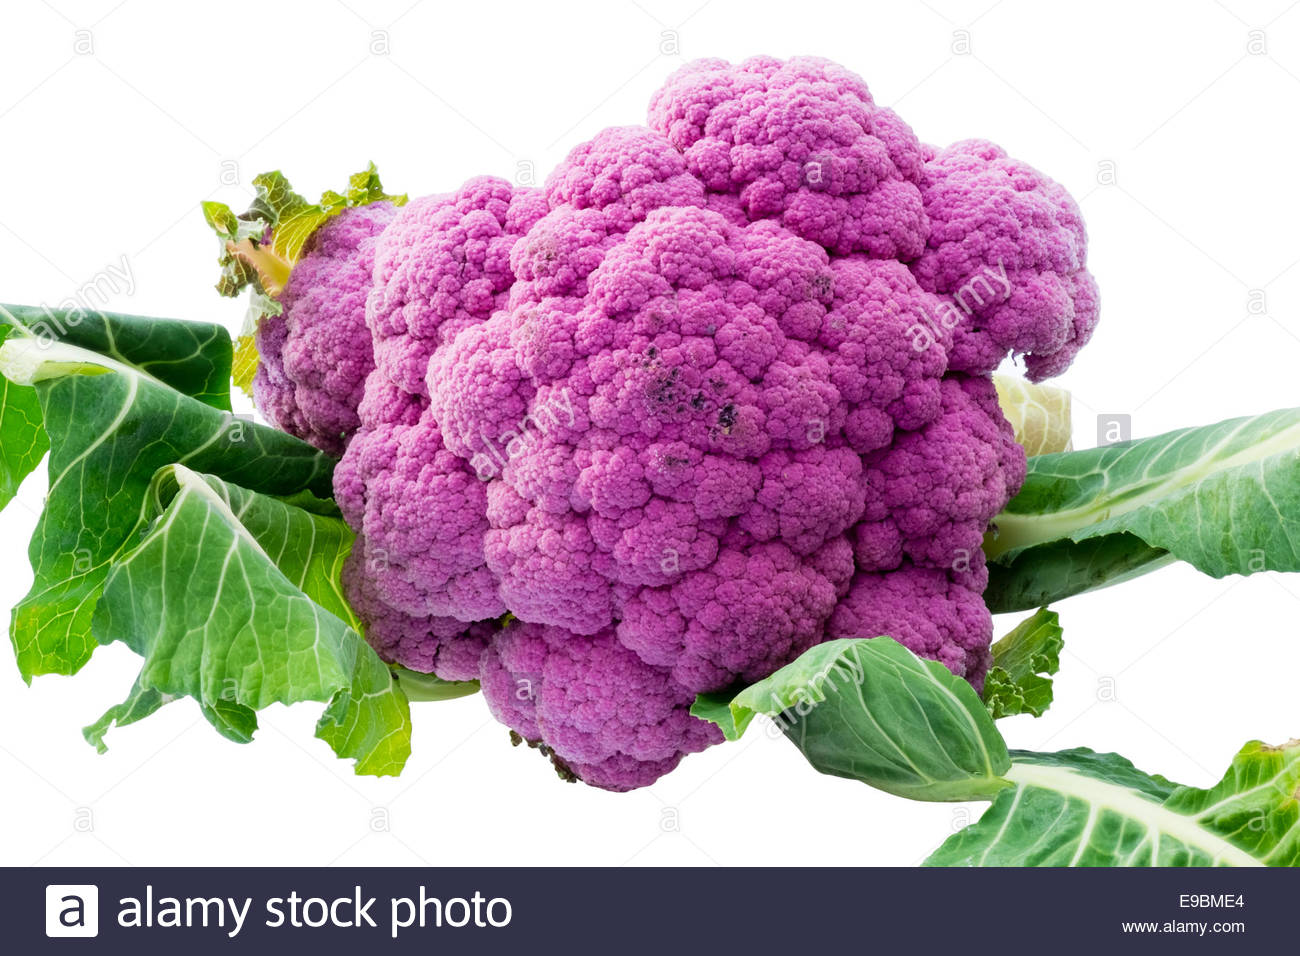 Purple cauliflower, photographed against a white background. - Stock Image